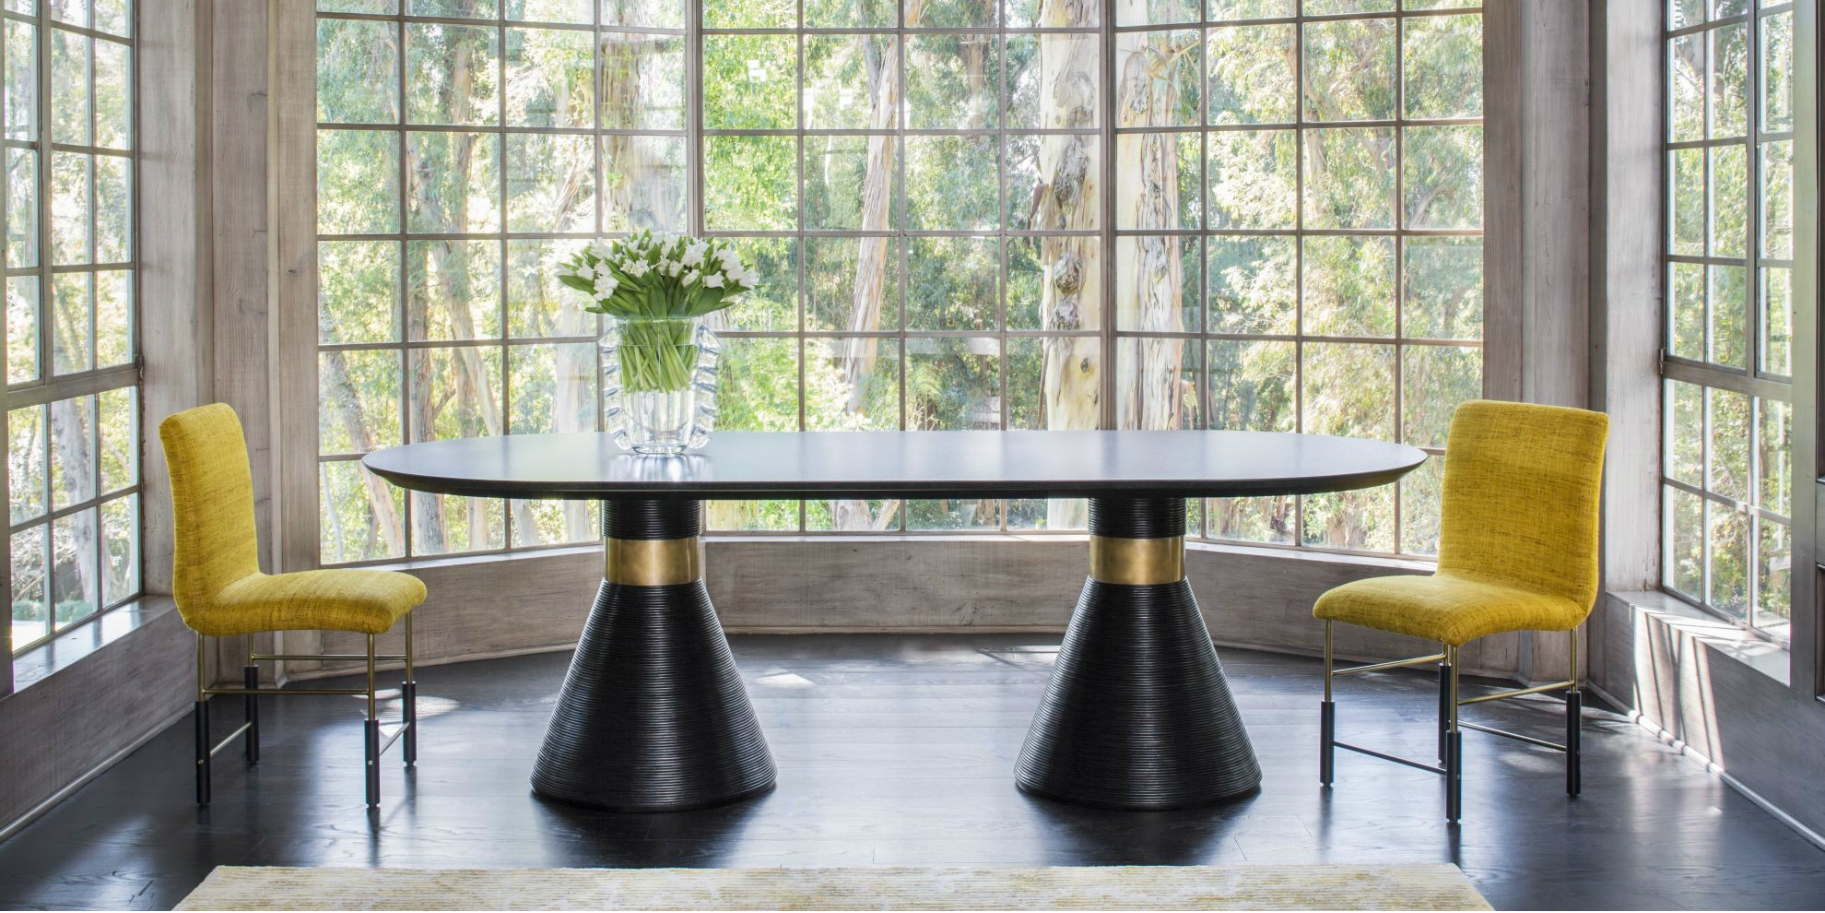 Luxury Dining Table Designs By Kelly, Kelly Wearstler Dining Room Chairs